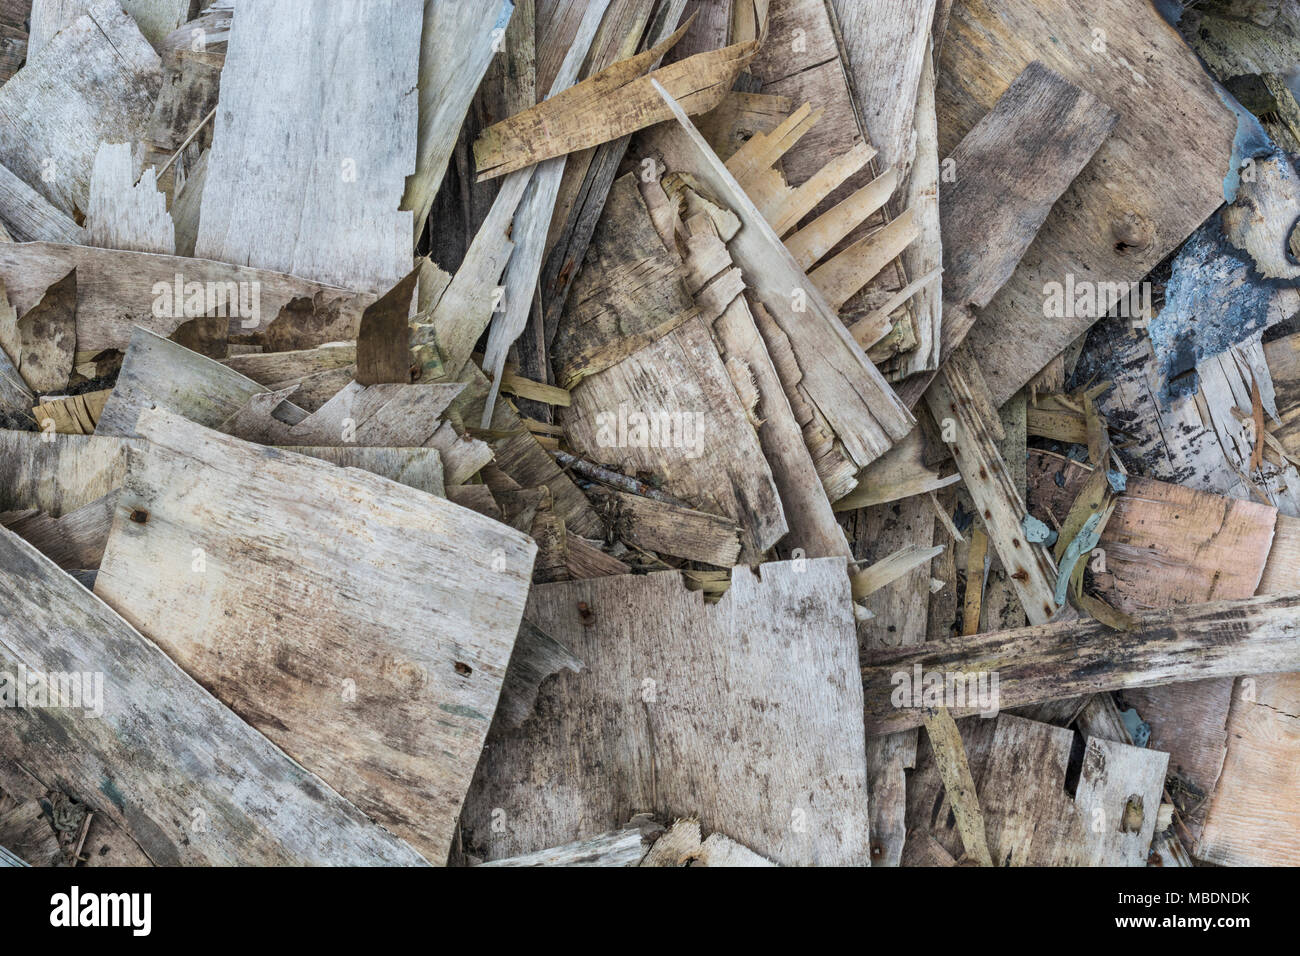 Pile of plywood pieces which are rotting / decaying and falling apart and faking. - Stock Image